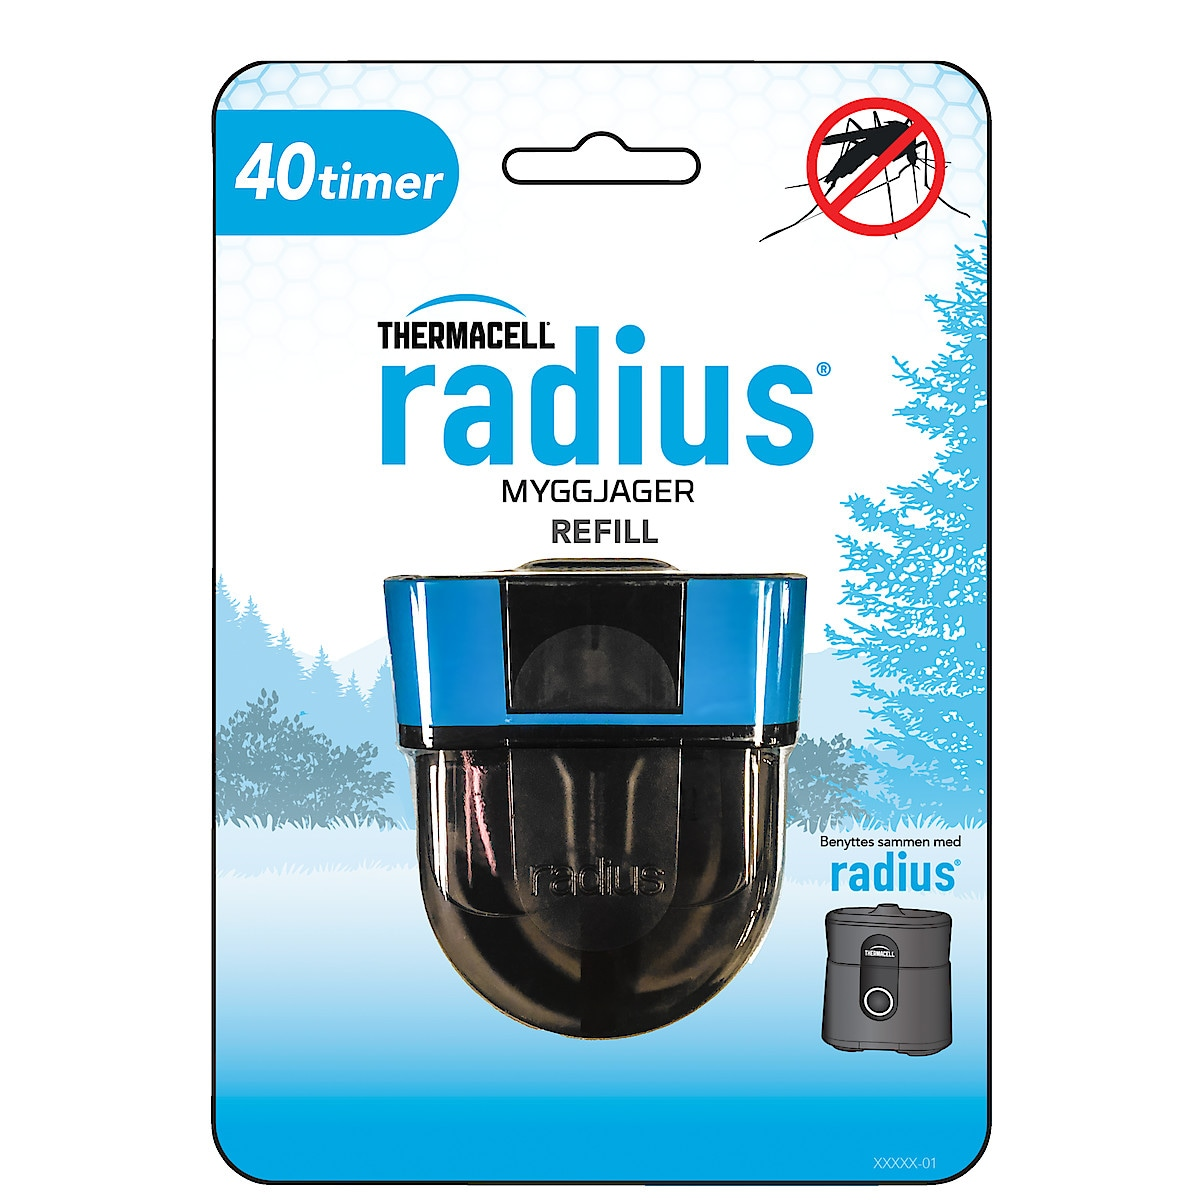 Refill til Thermacell Radius myggjager